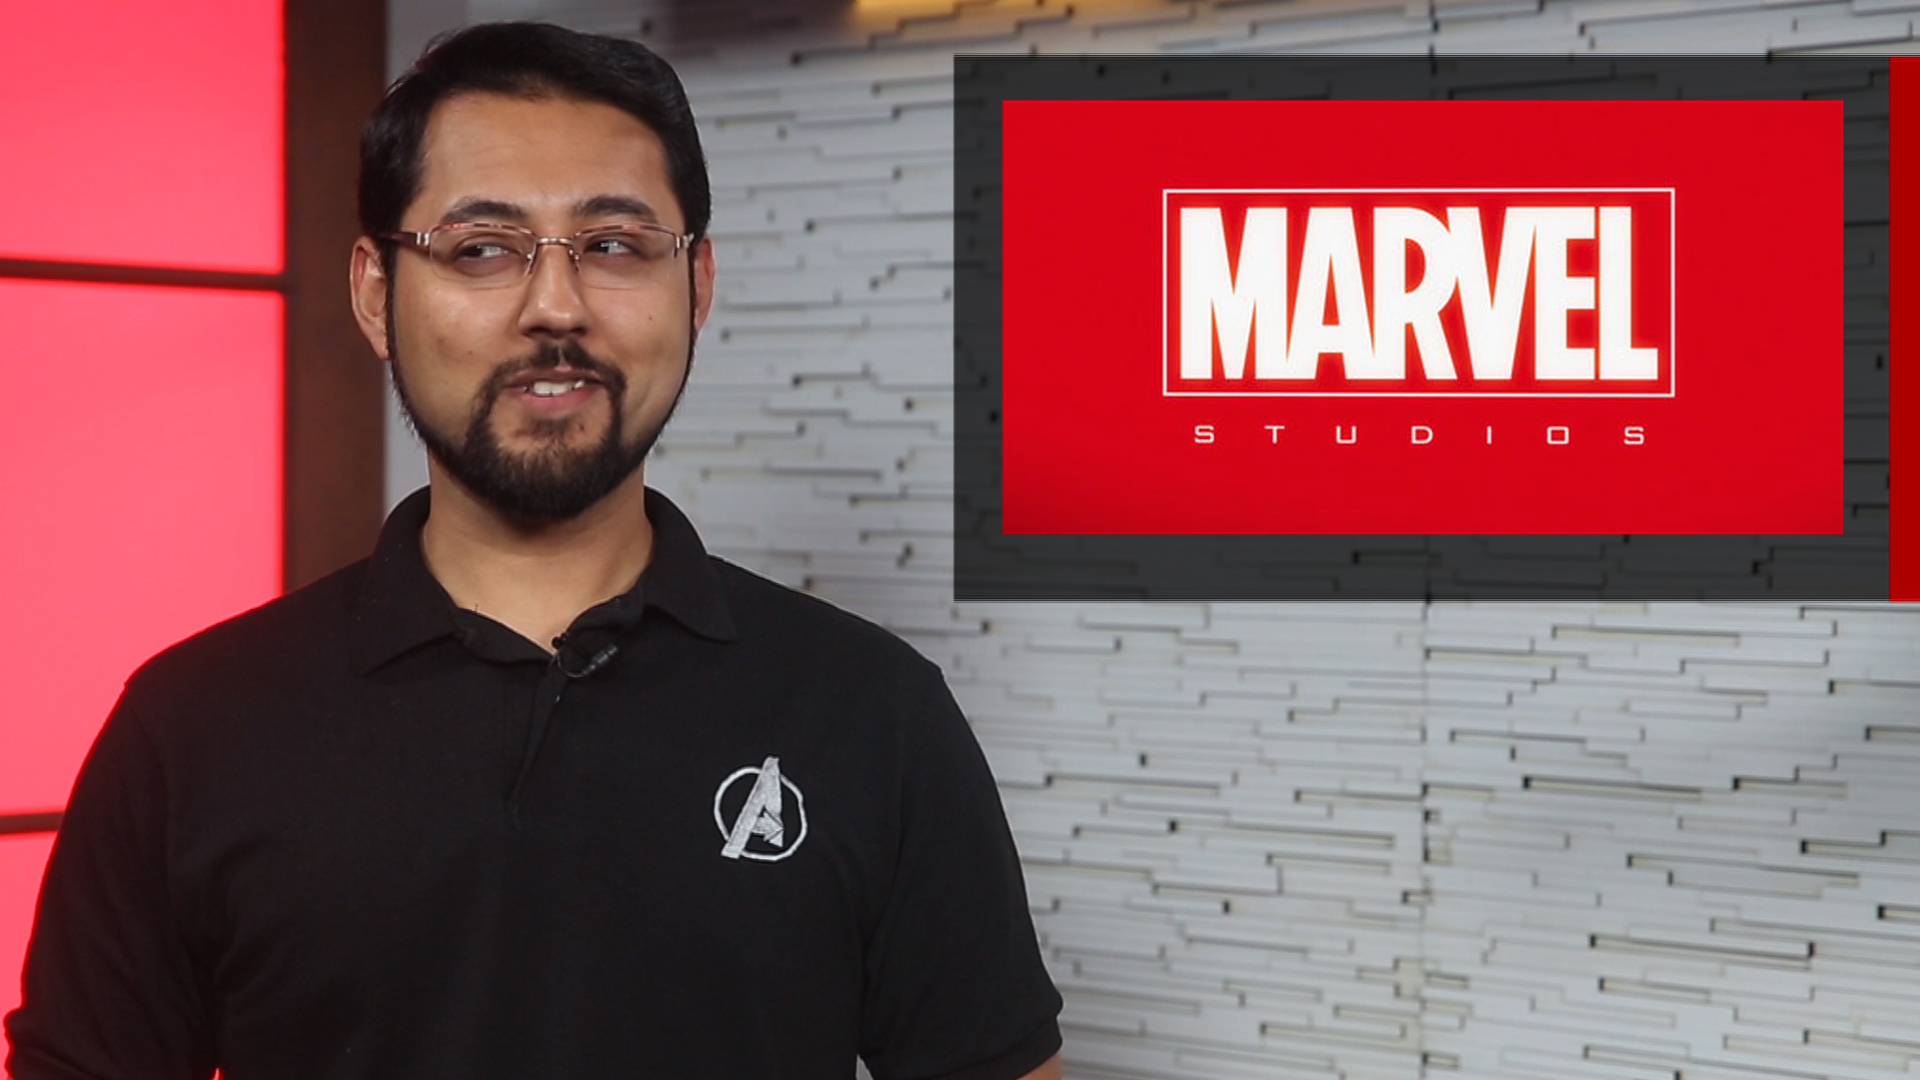 Video: Top 5 movies Marvel wants you to forget